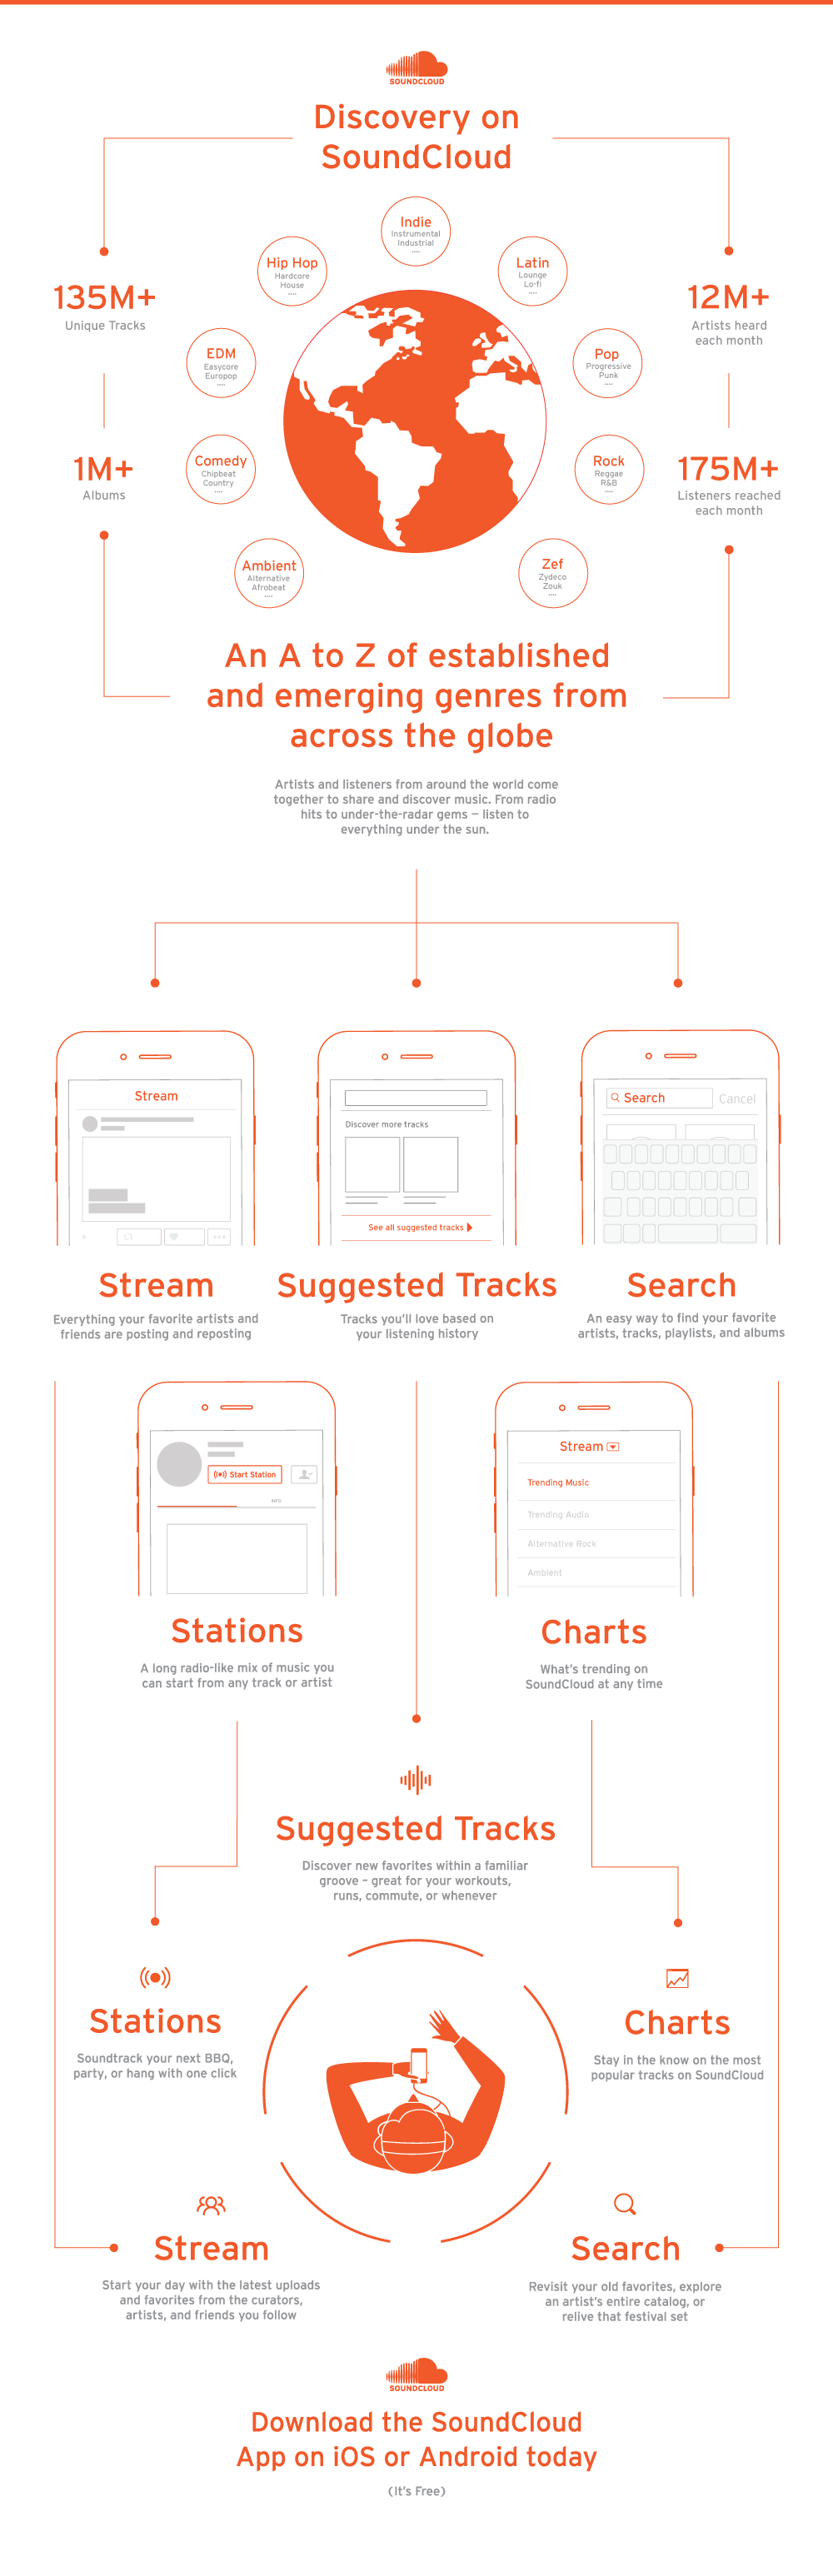 SoundCloud music streaming service platform open users